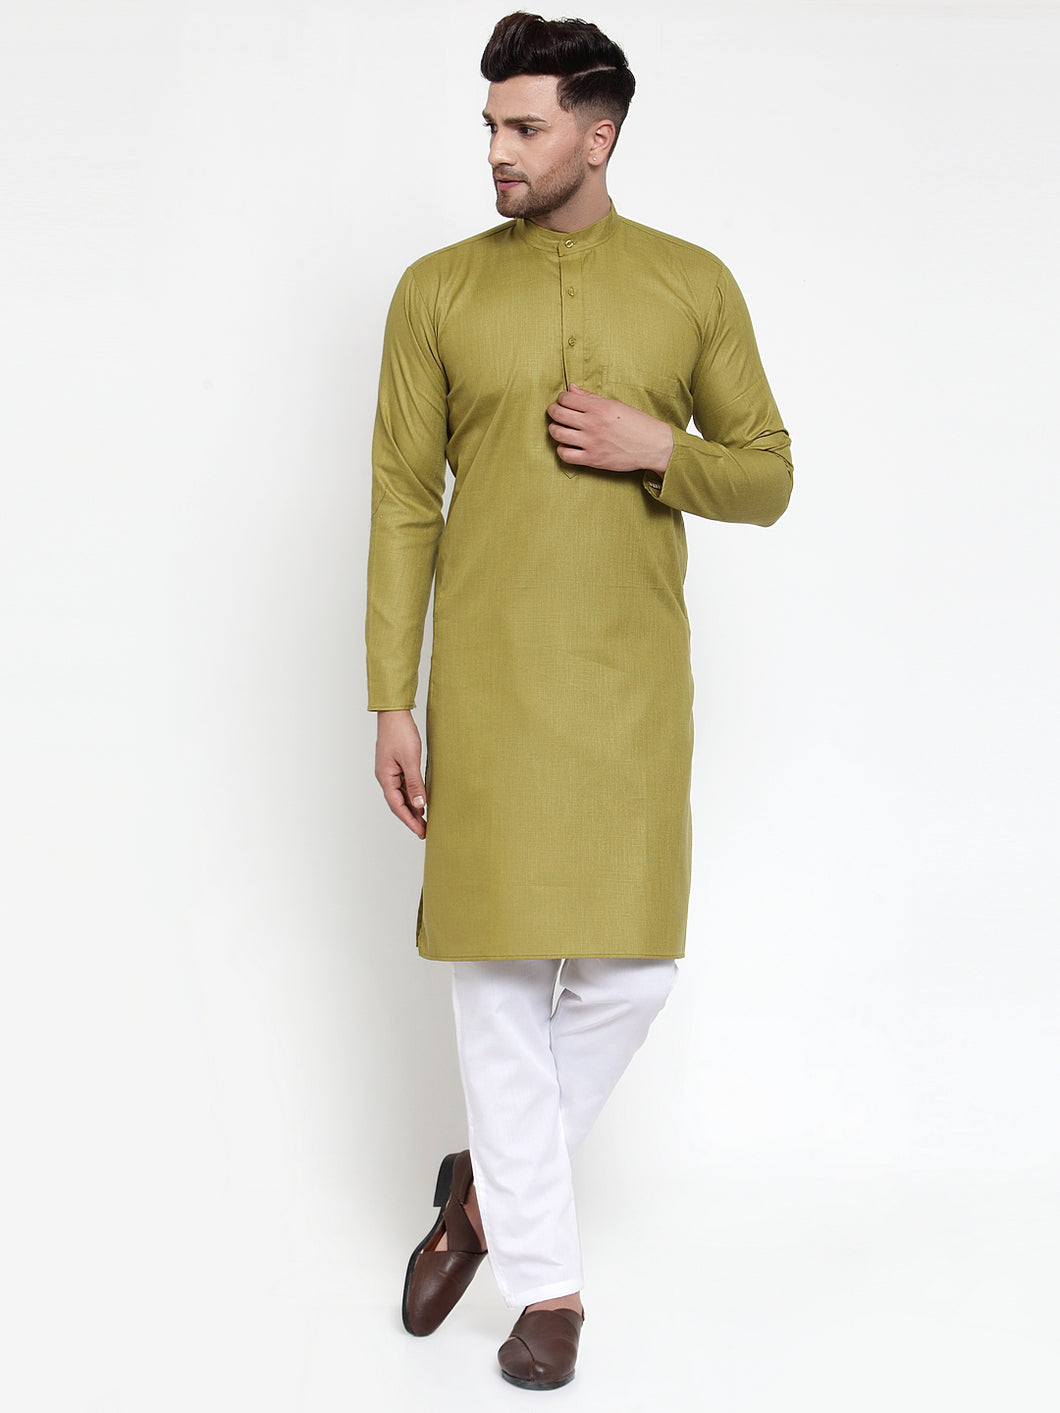 Jompers Men Olive Green & White Solid Kurta with Churidar ( JOKP 611 Olive )